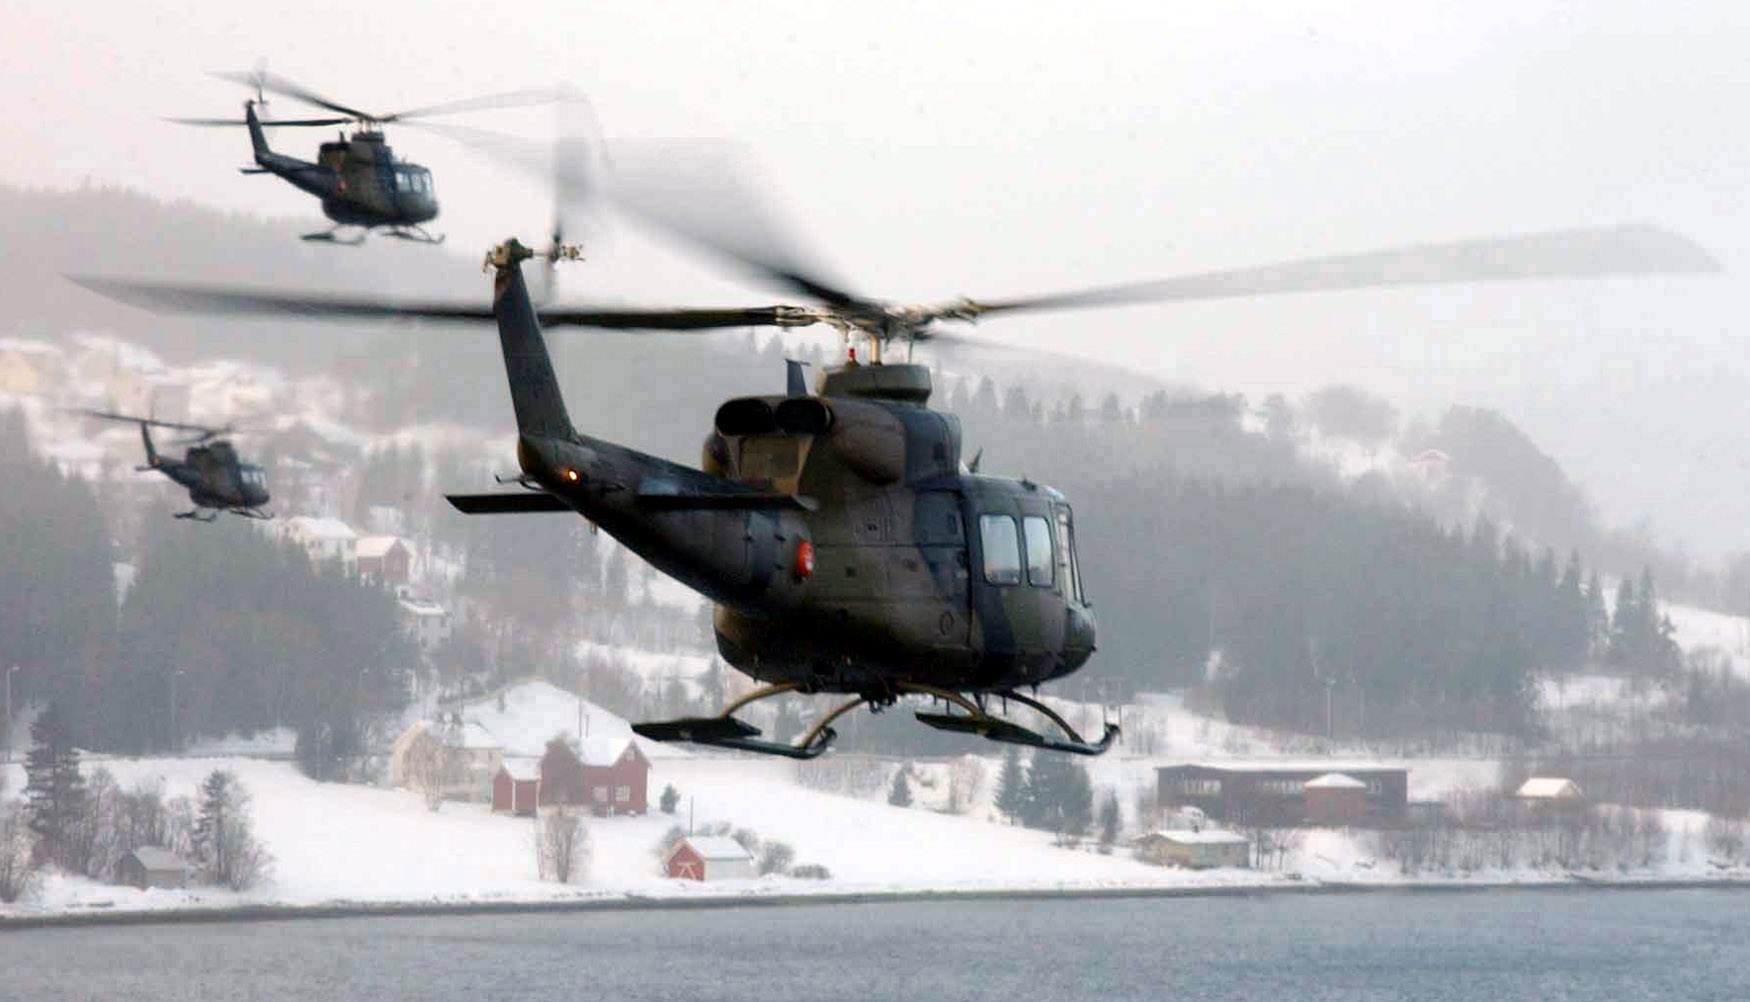 LUNDAMO, Norway -- A group of Norwegian Bell 412SP's travel to the port of Orkanger to insert a team of Marines from 1st Battalion, 8th Marine Regiment. The leathernecks are participating in DV (distinguished visitors) Day March 10 during Battle Griffin, the second phase of NATO exercise Strong Resolve '02. (USMC photo by Cpl. Paula M. Fitzgerald)